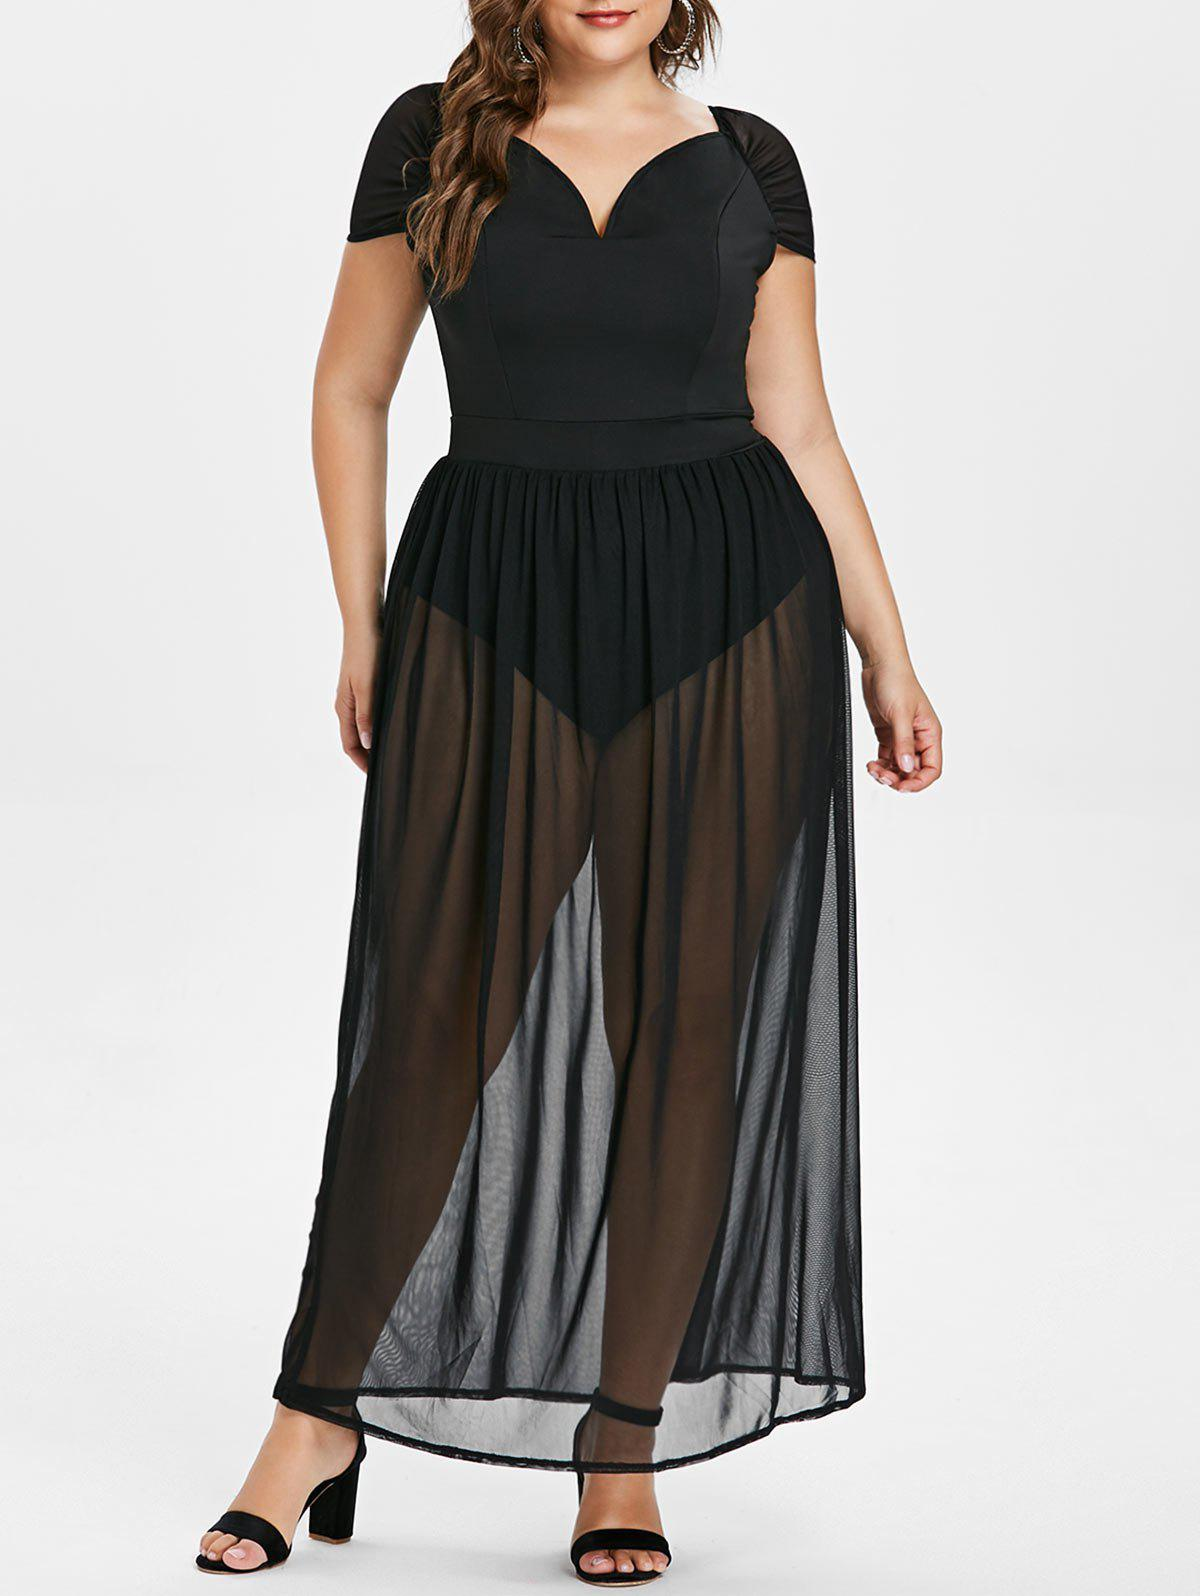 Short Sleeve Plus Size See Through Maxi Dress